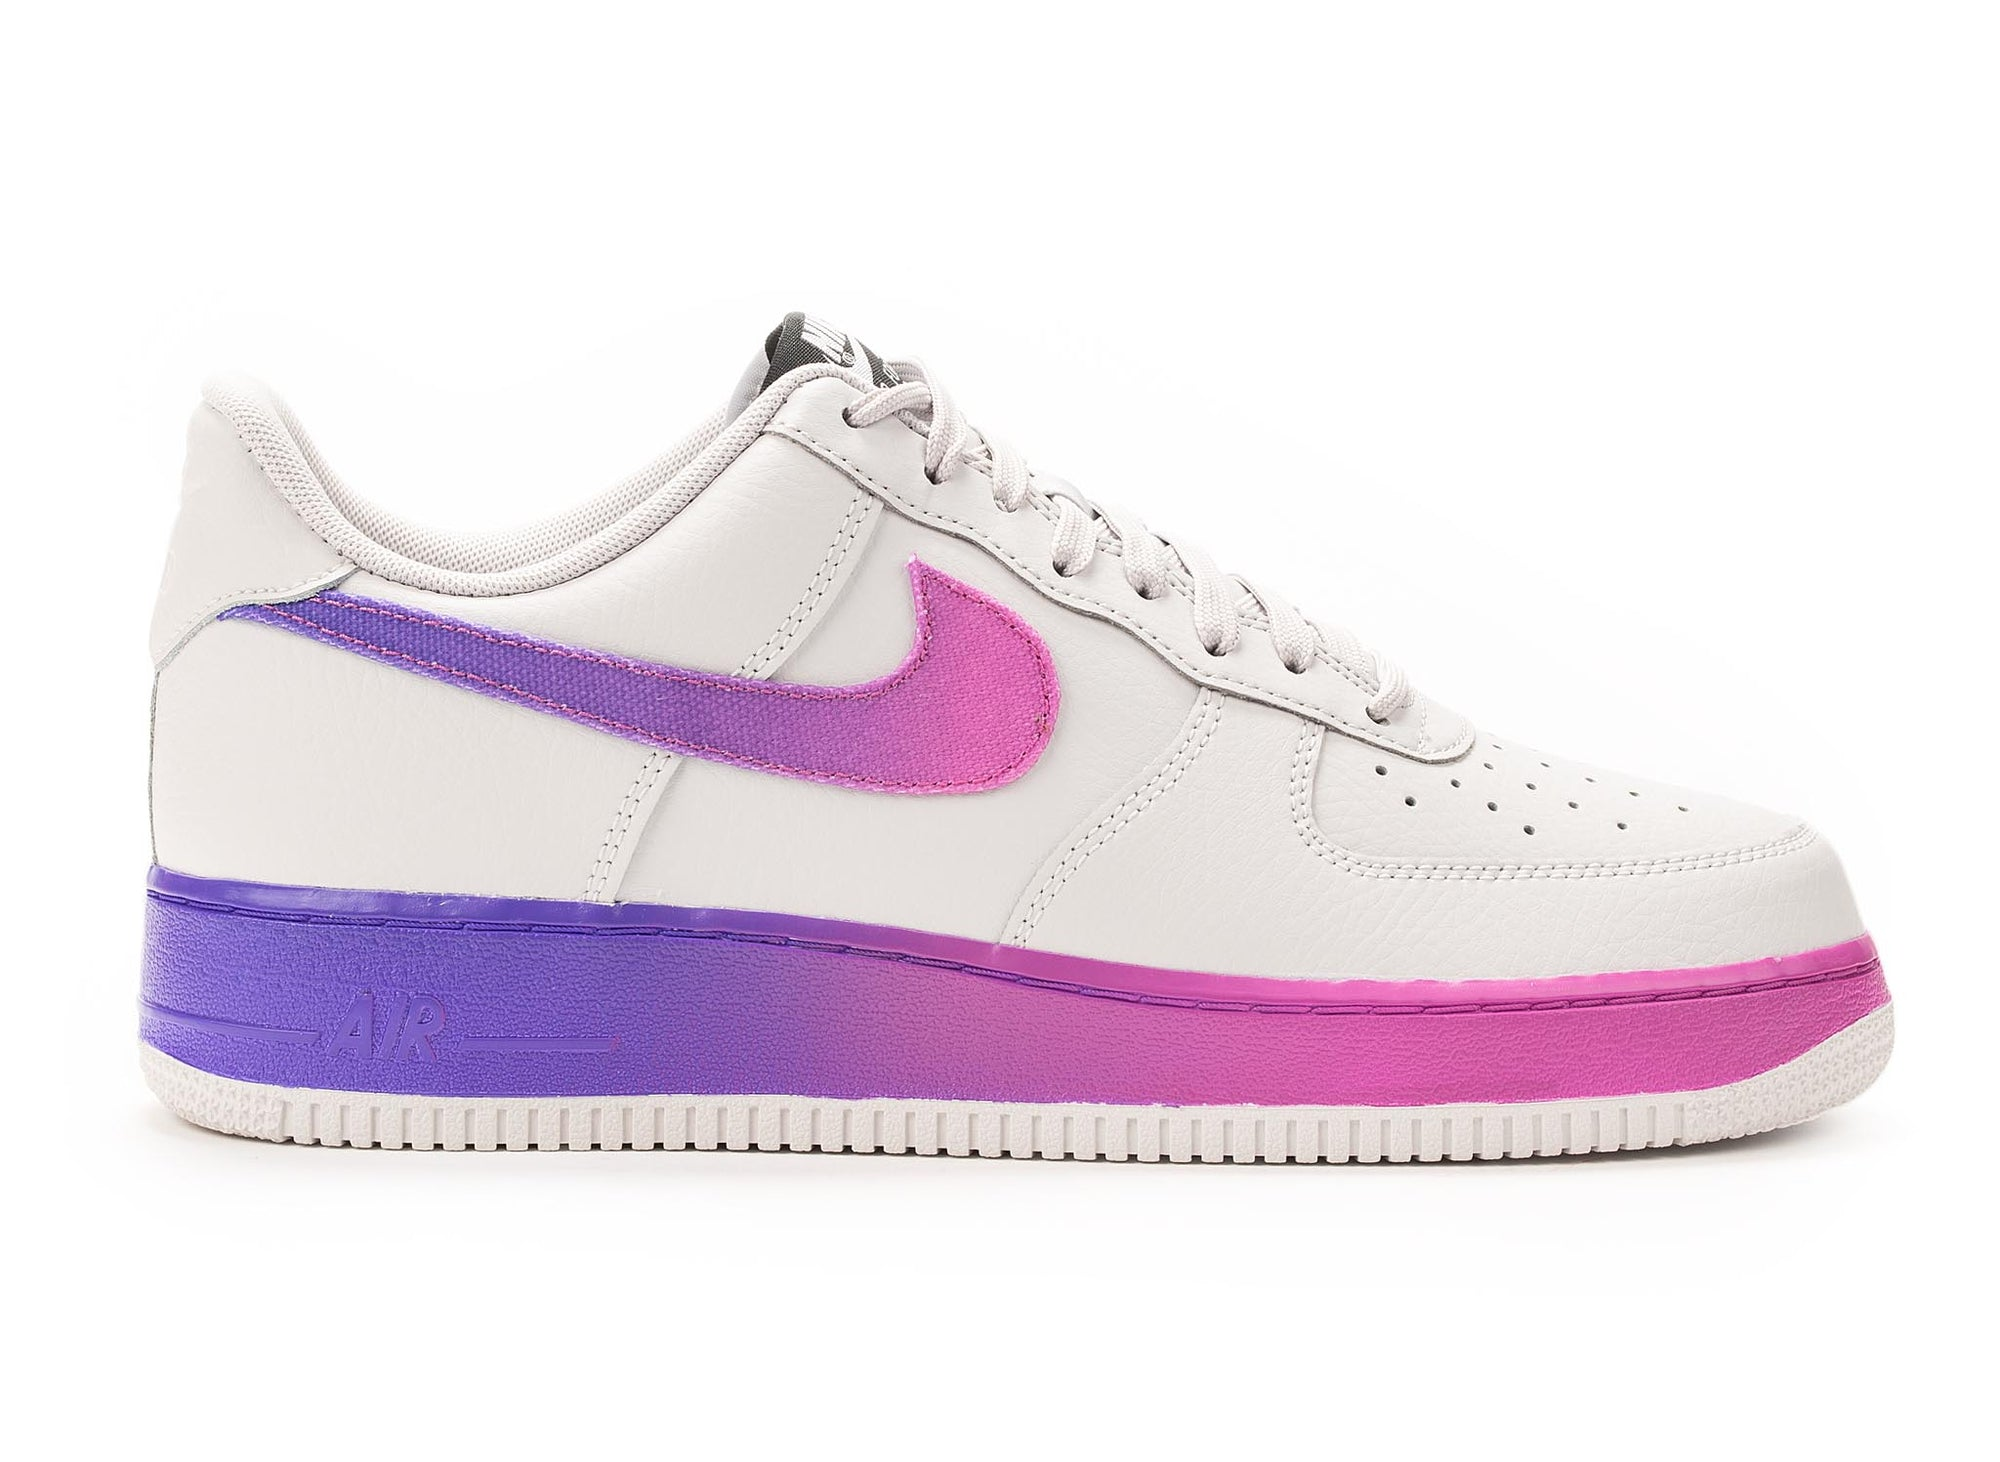 Nike Air Force 1 07 LV8 'Hyper Grape'